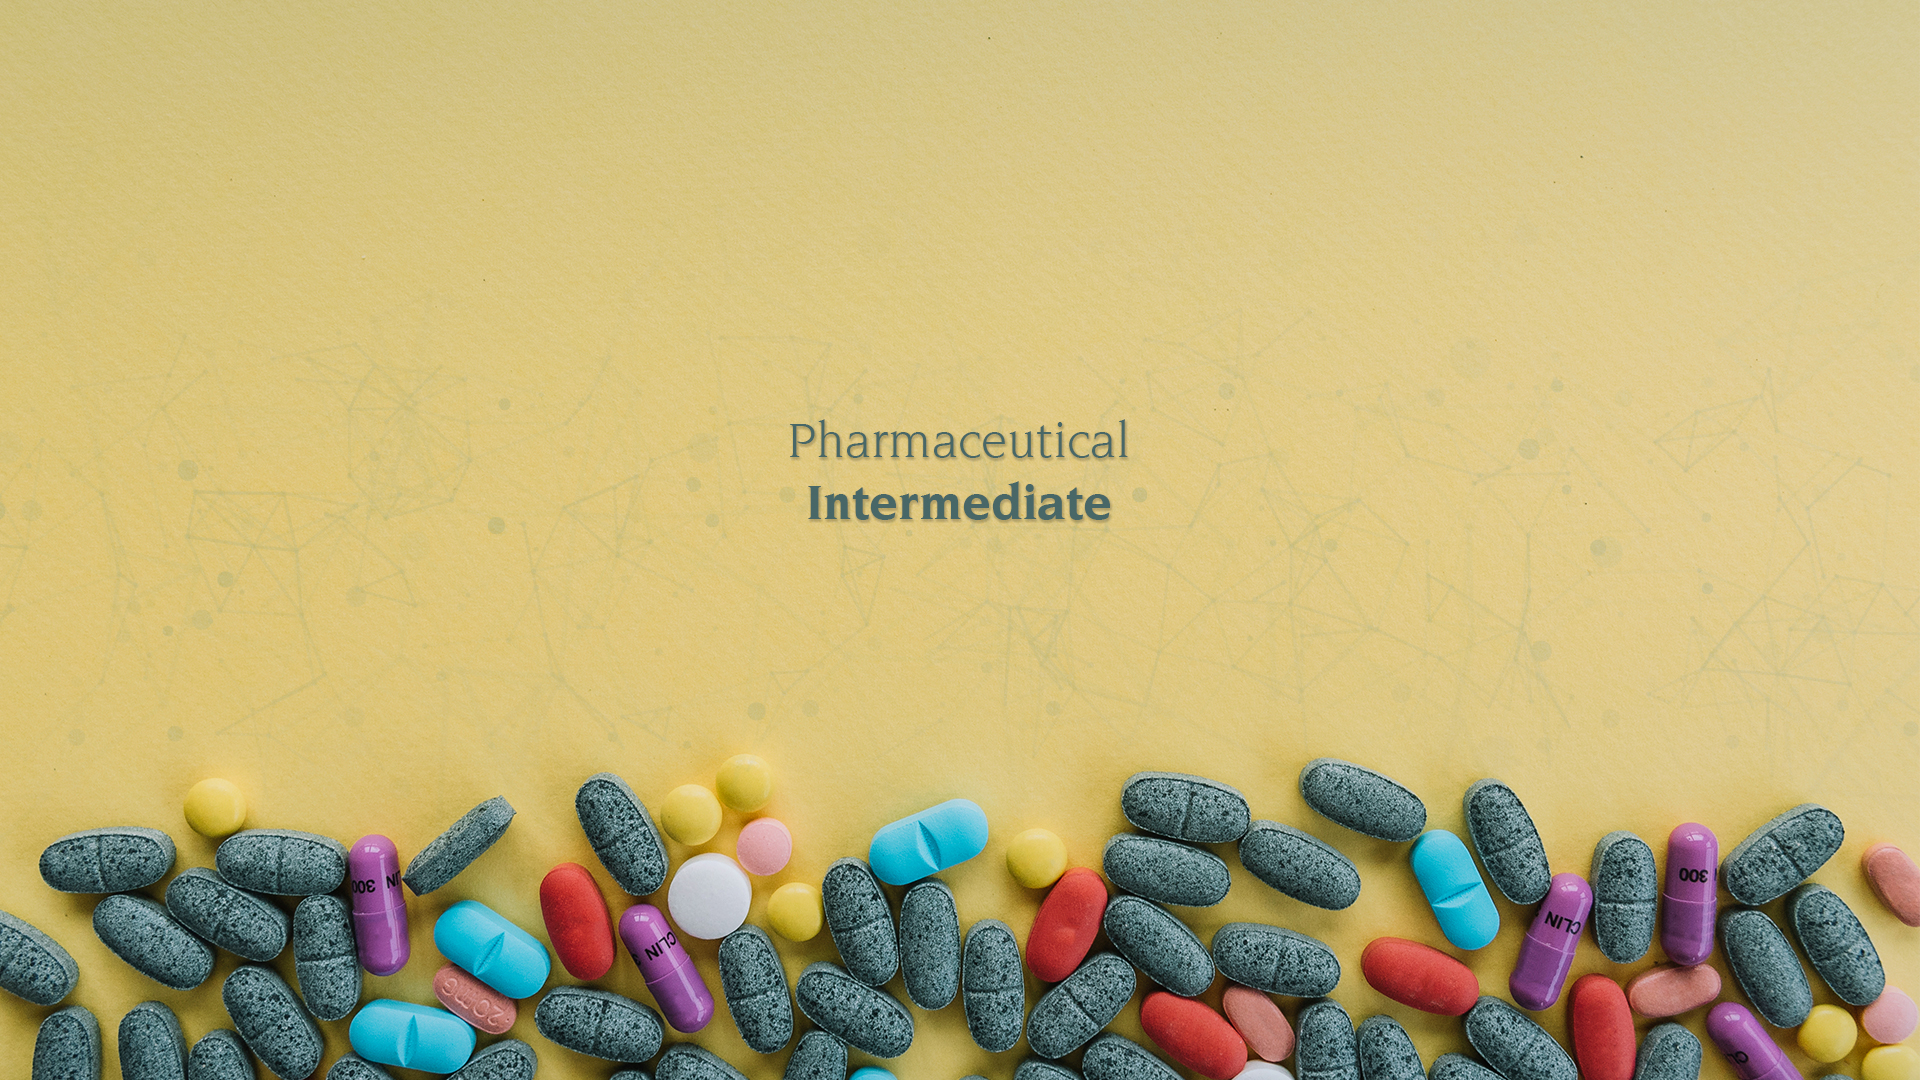 Pharmaceutical-Intermediate